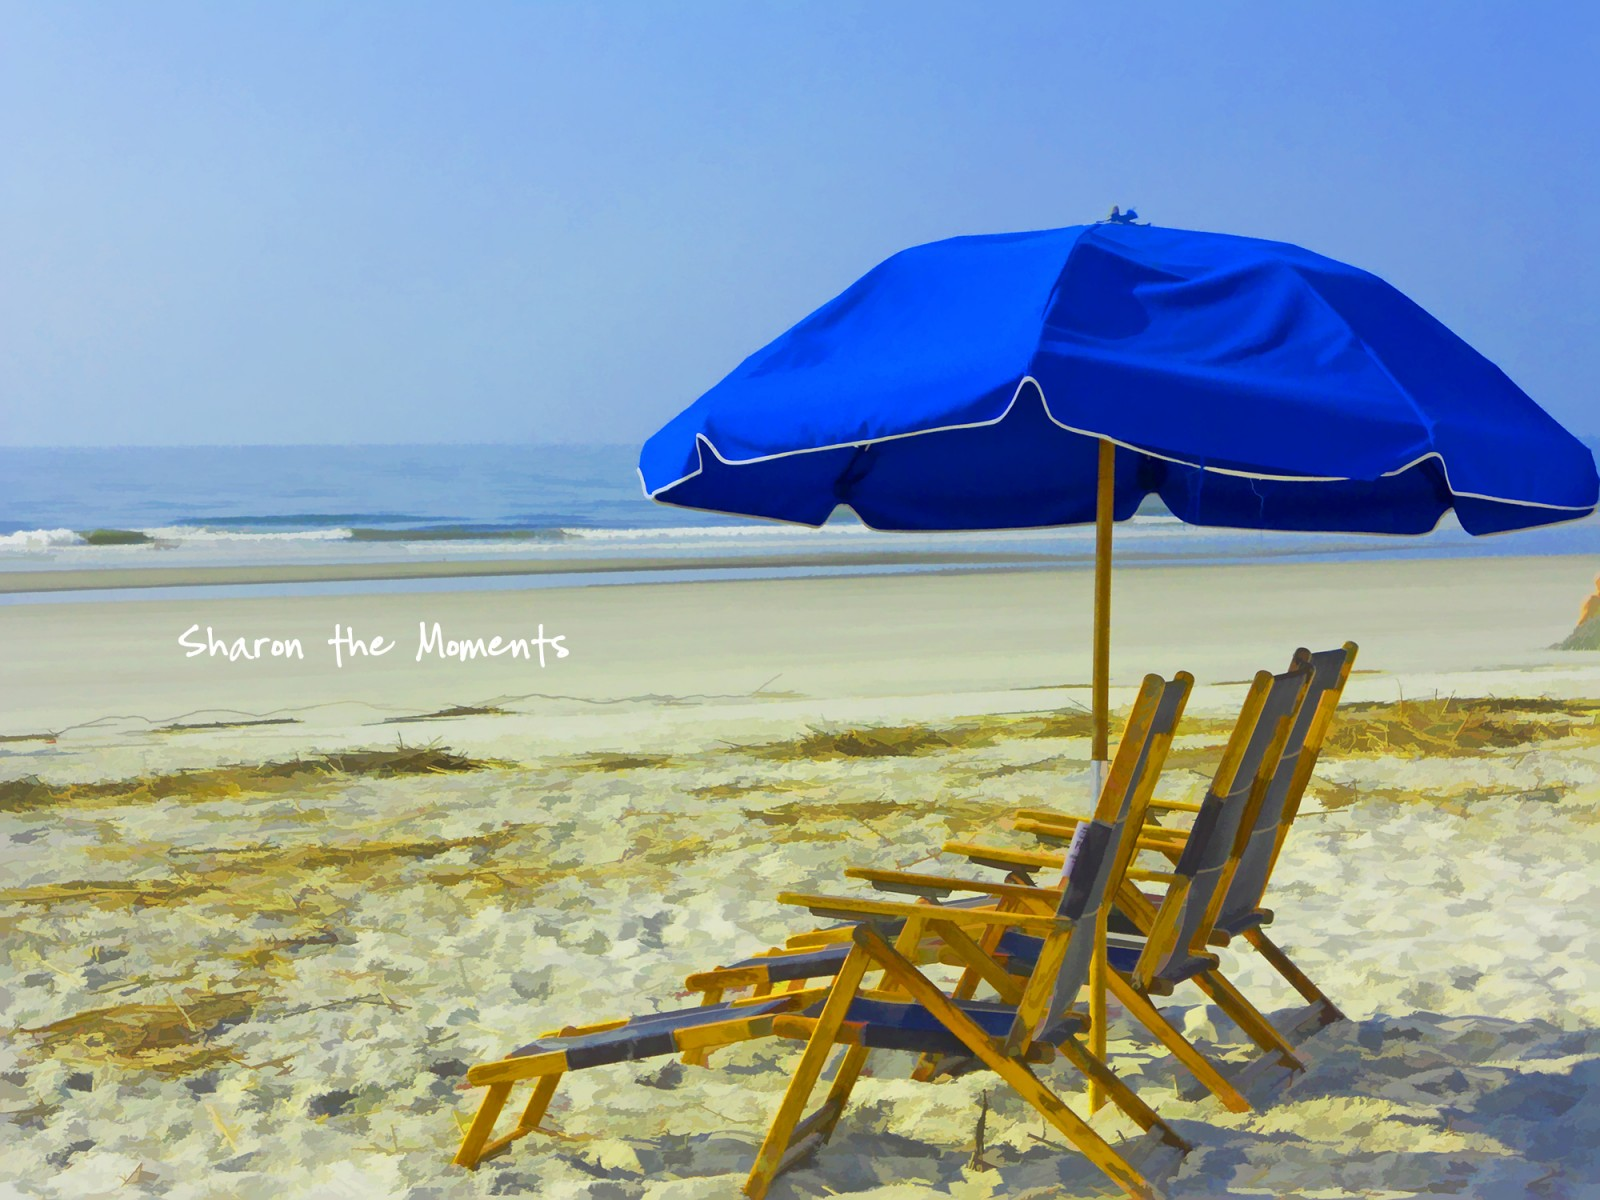 Twenty Things to do on Florida's Gulf Coast| Sharon the Moments Blog